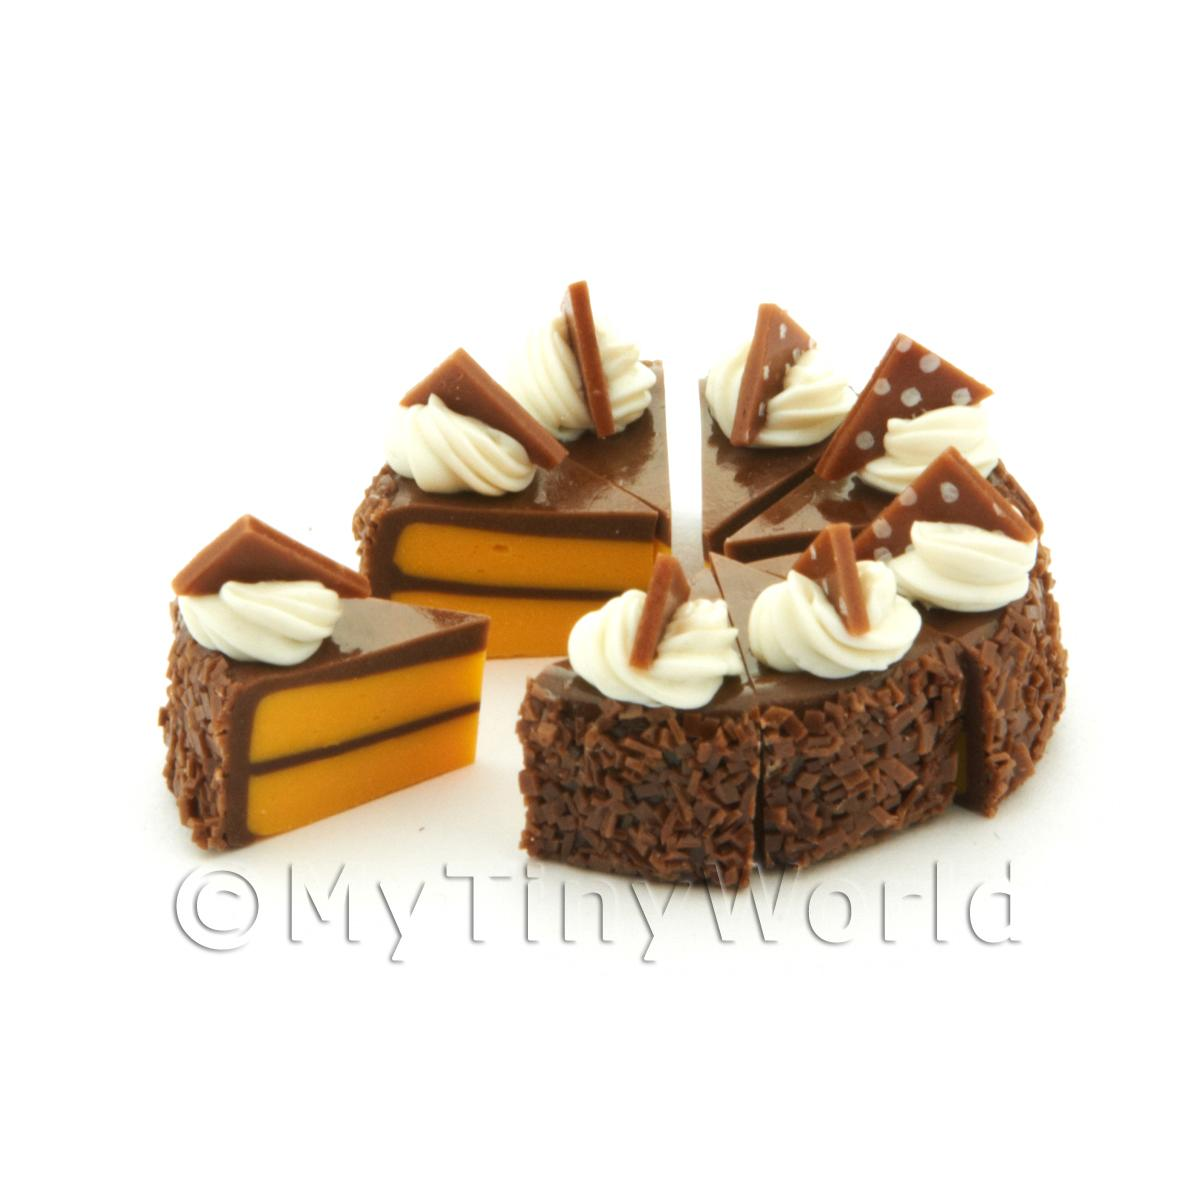 Miniature Whole Sliced Loose Chocolate Triangle Cake